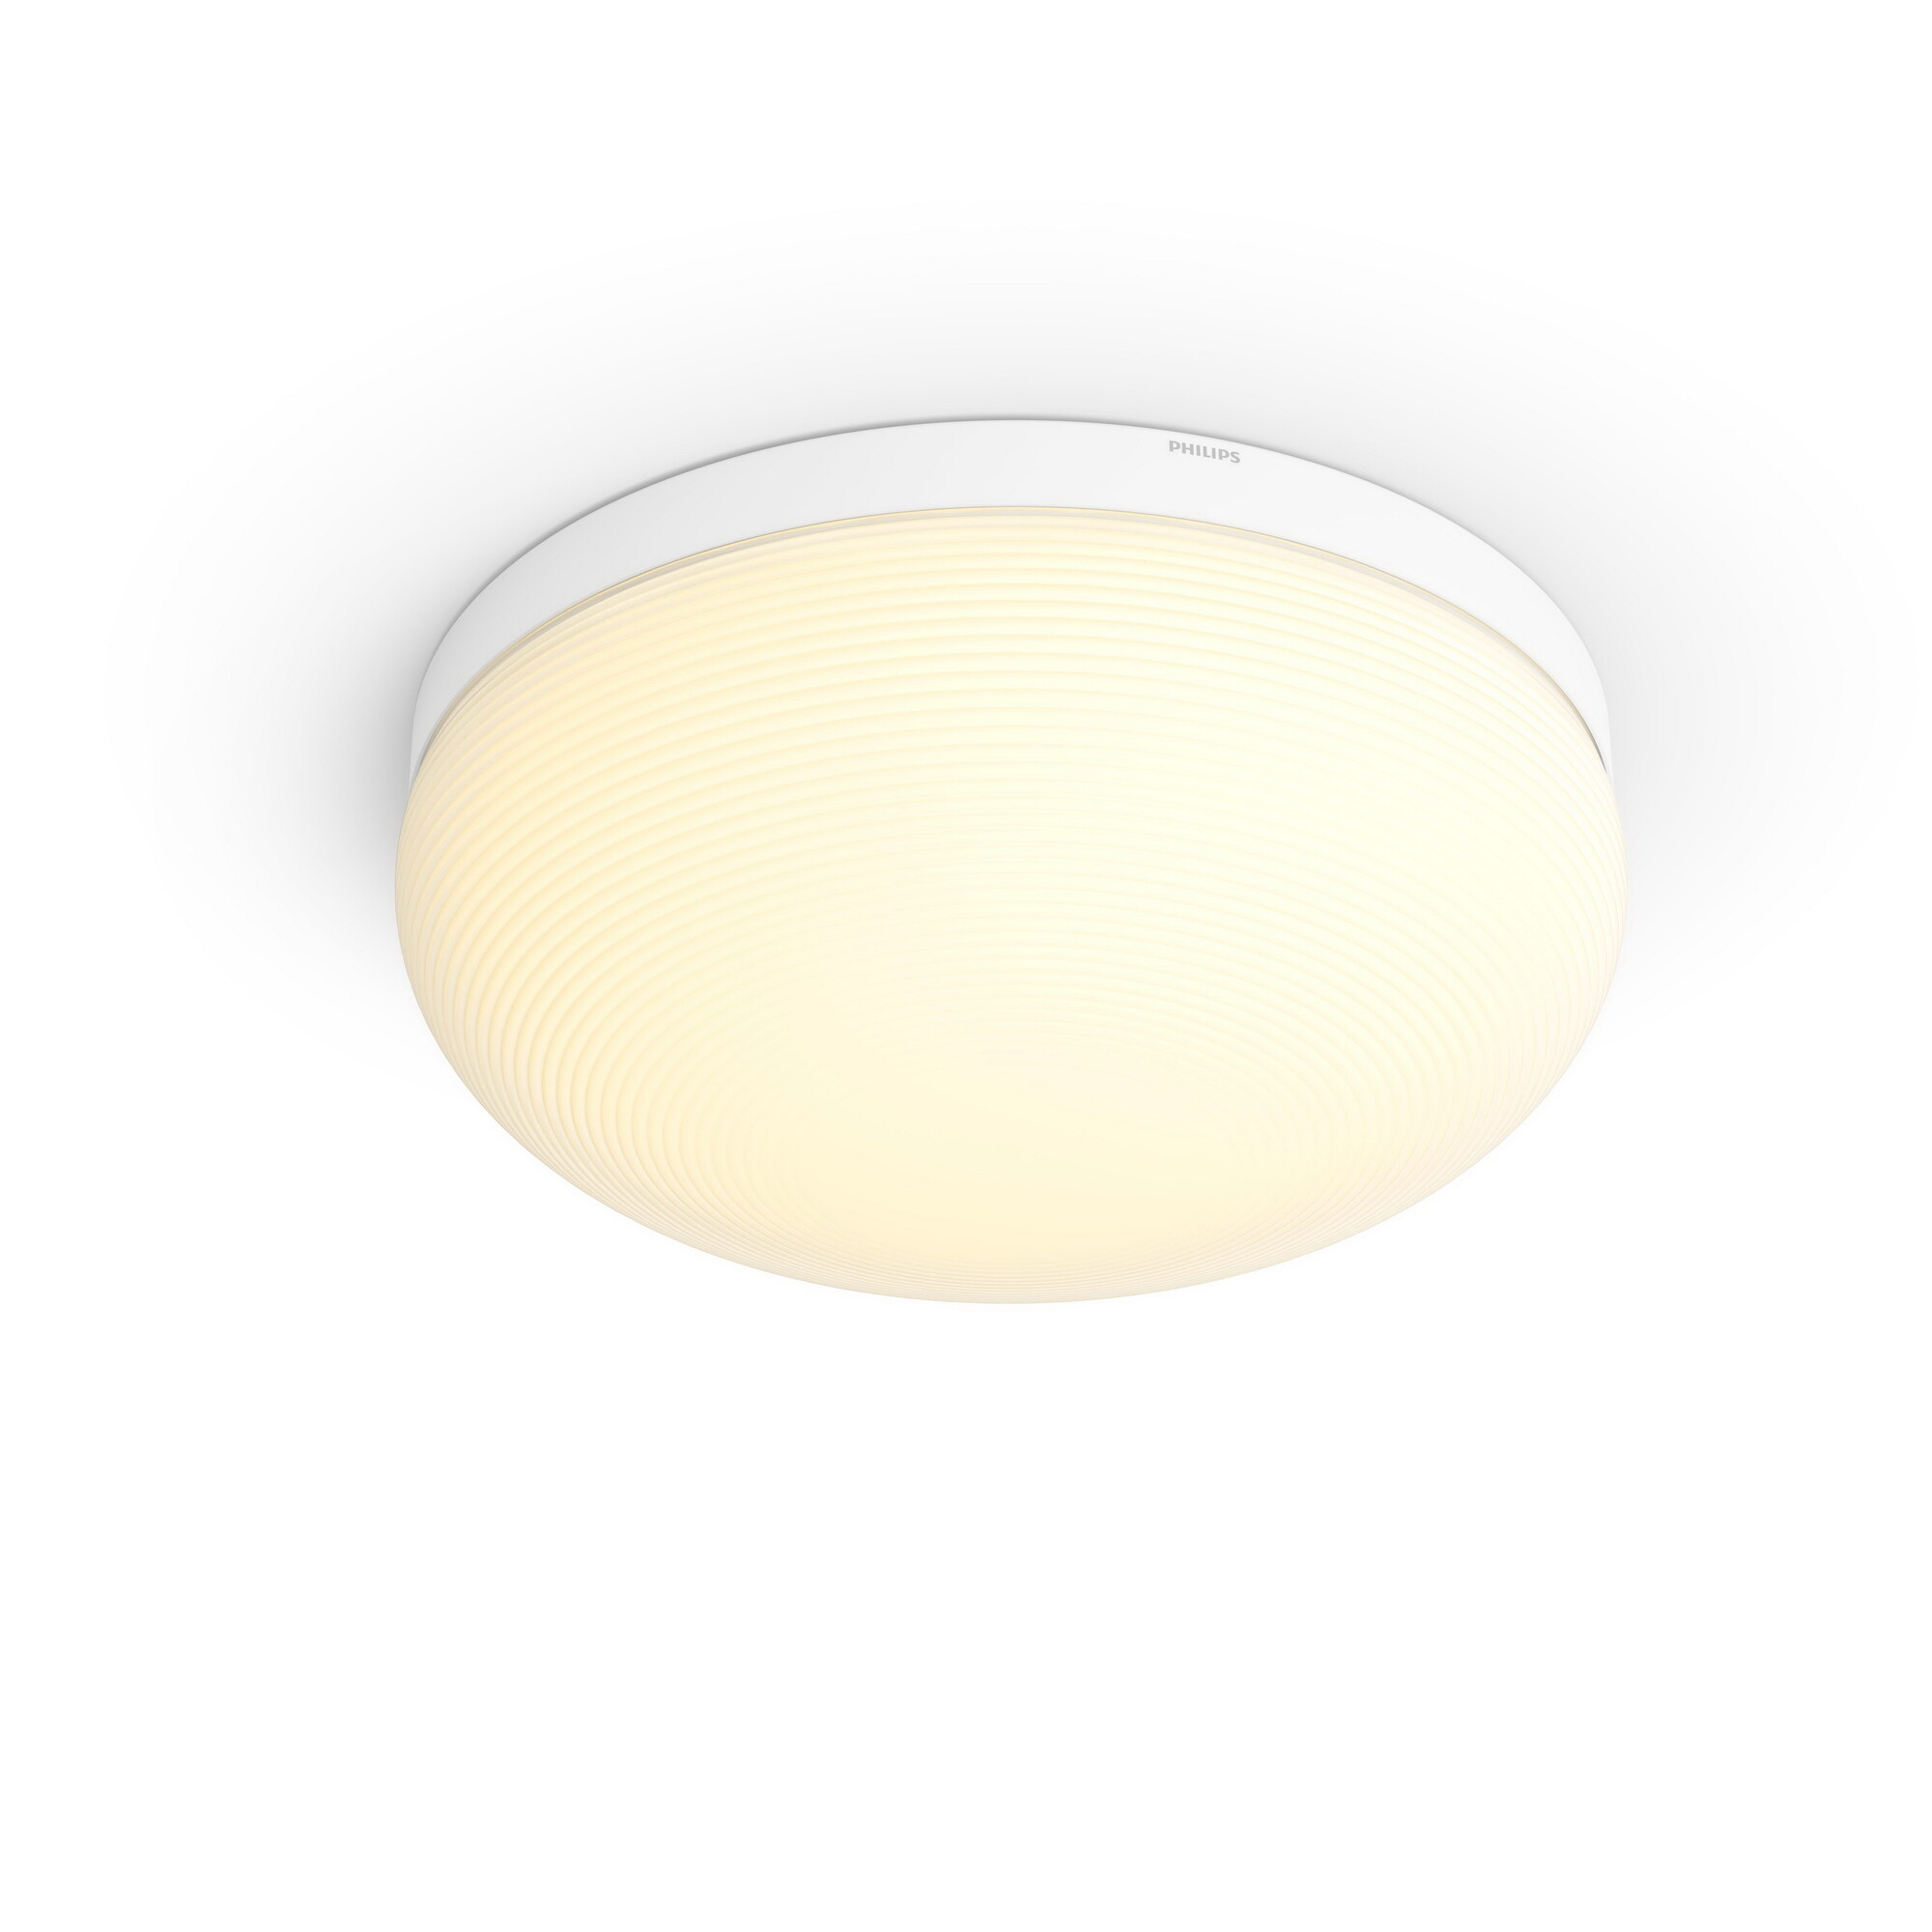 Philips HUE FLOURISH Plafonnier LED 1x32W/2400lm Blanc